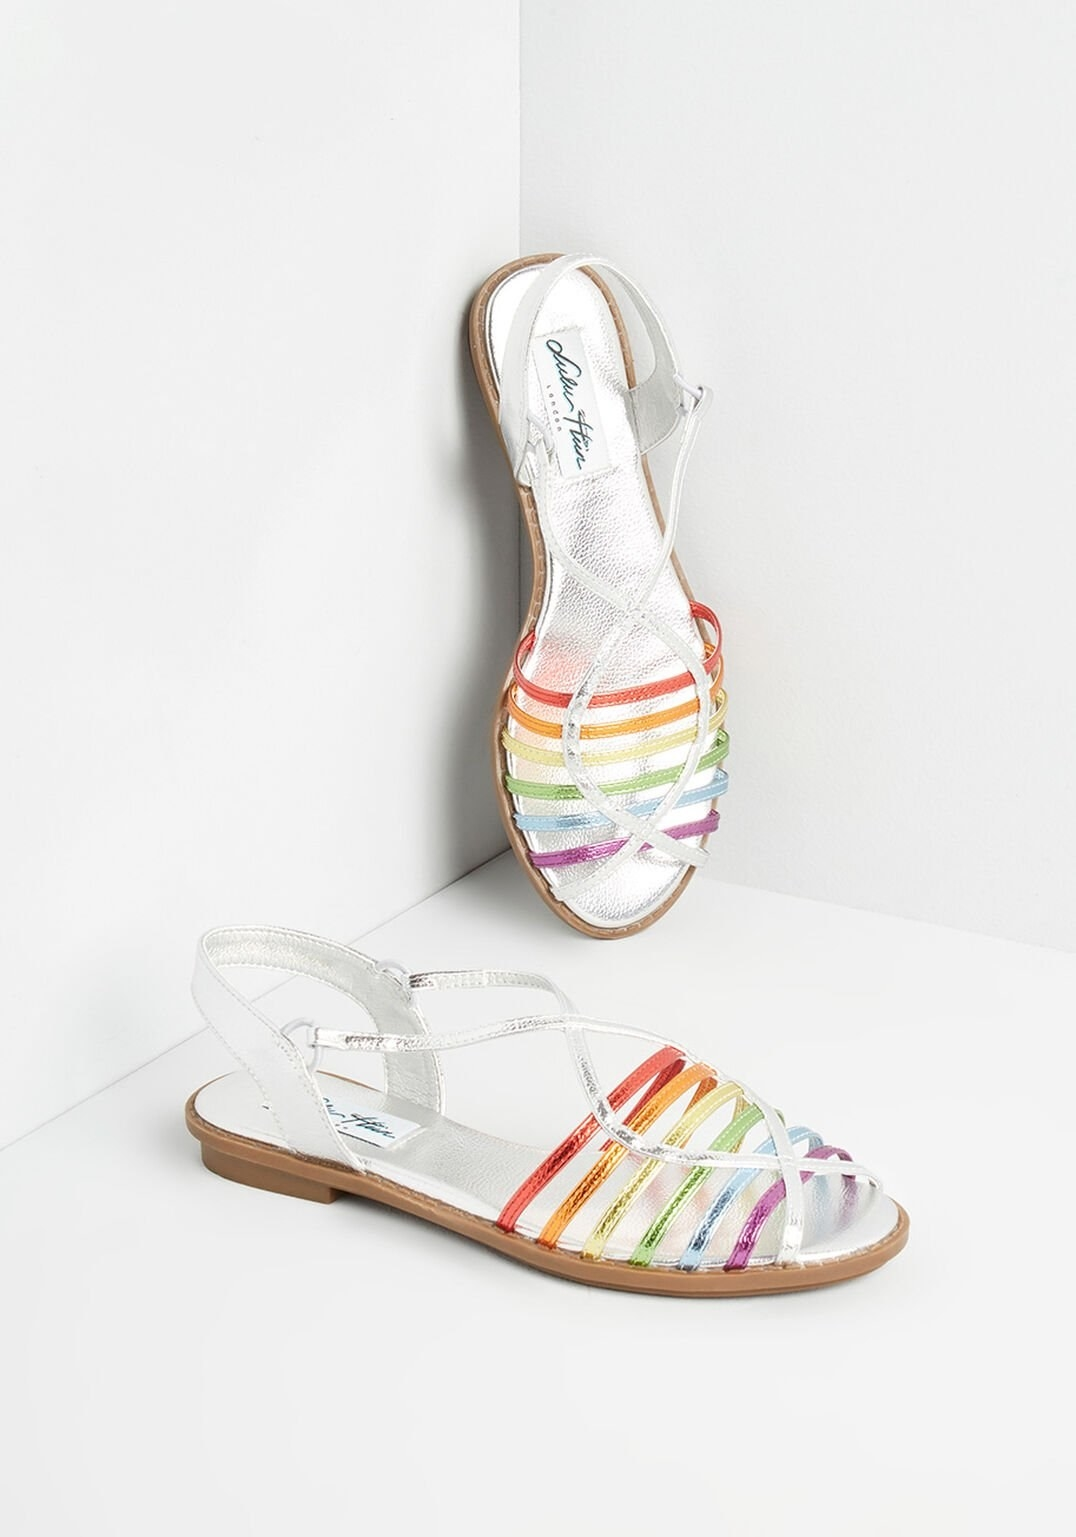 flat sandals with silver and rainbow colored straps